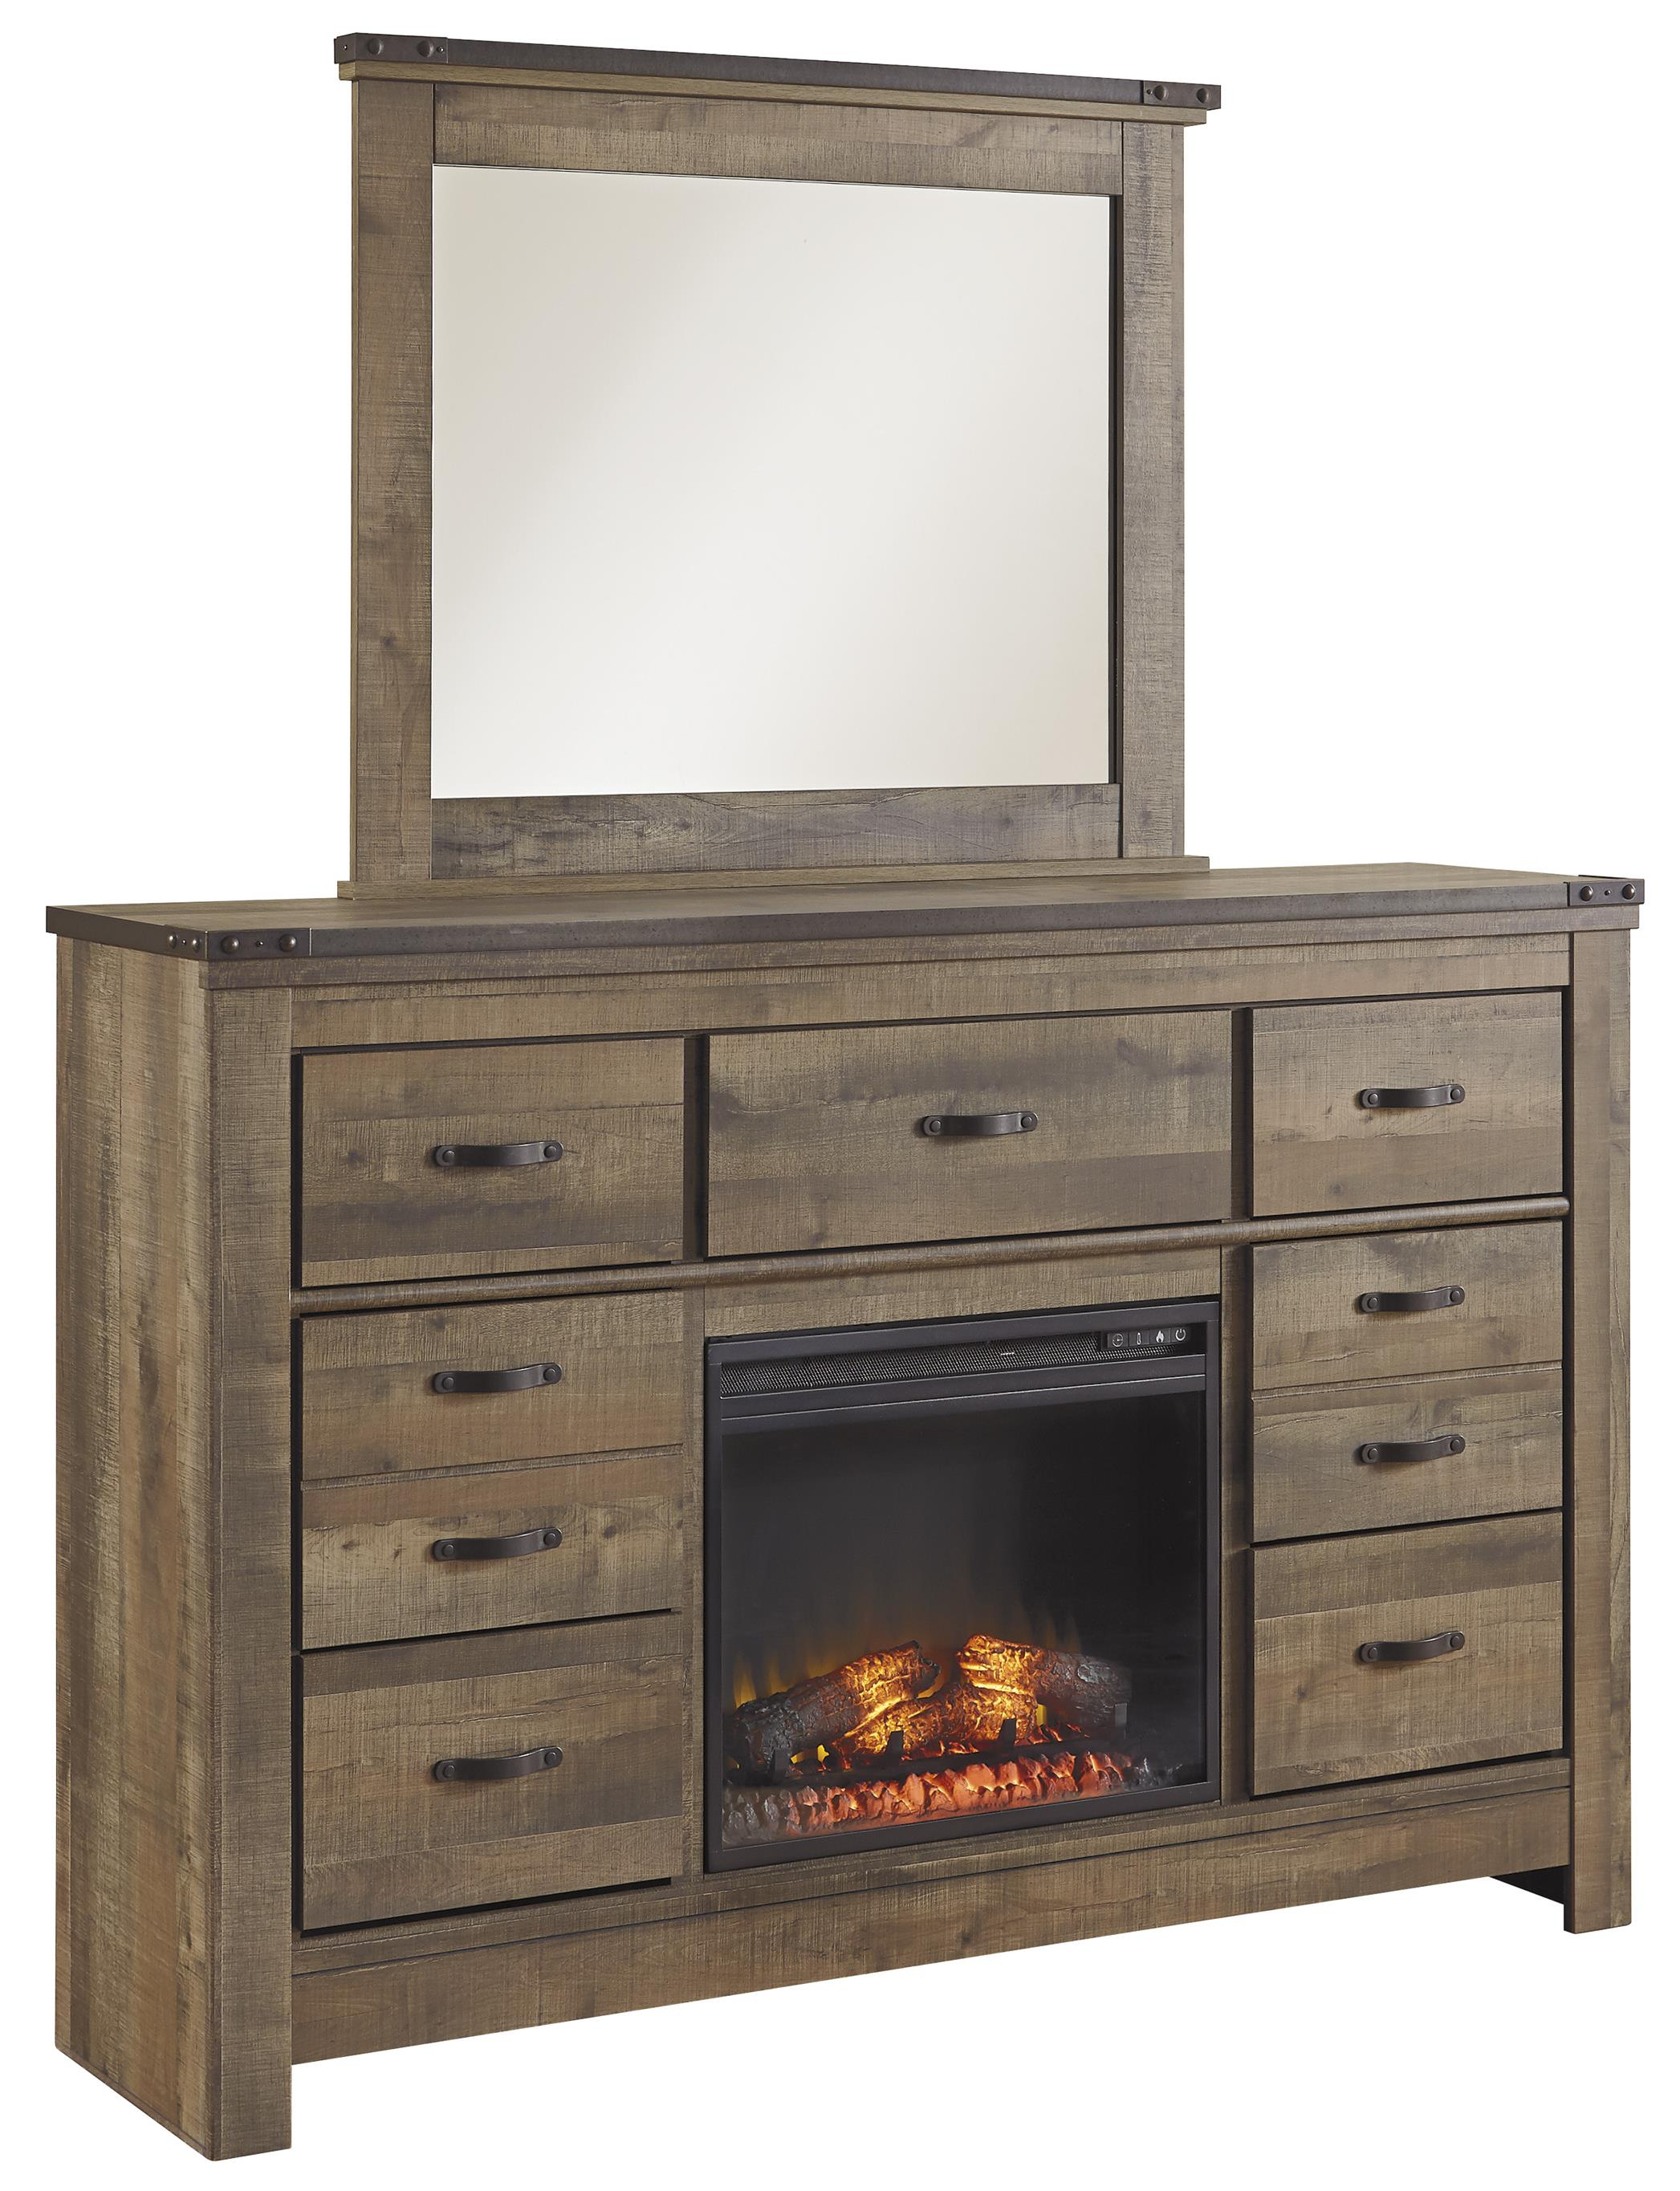 Signature Design by Ashley Trinell Dresser with Fireplace Insert & Mirror - Item Number: B446-32+W100-01+26